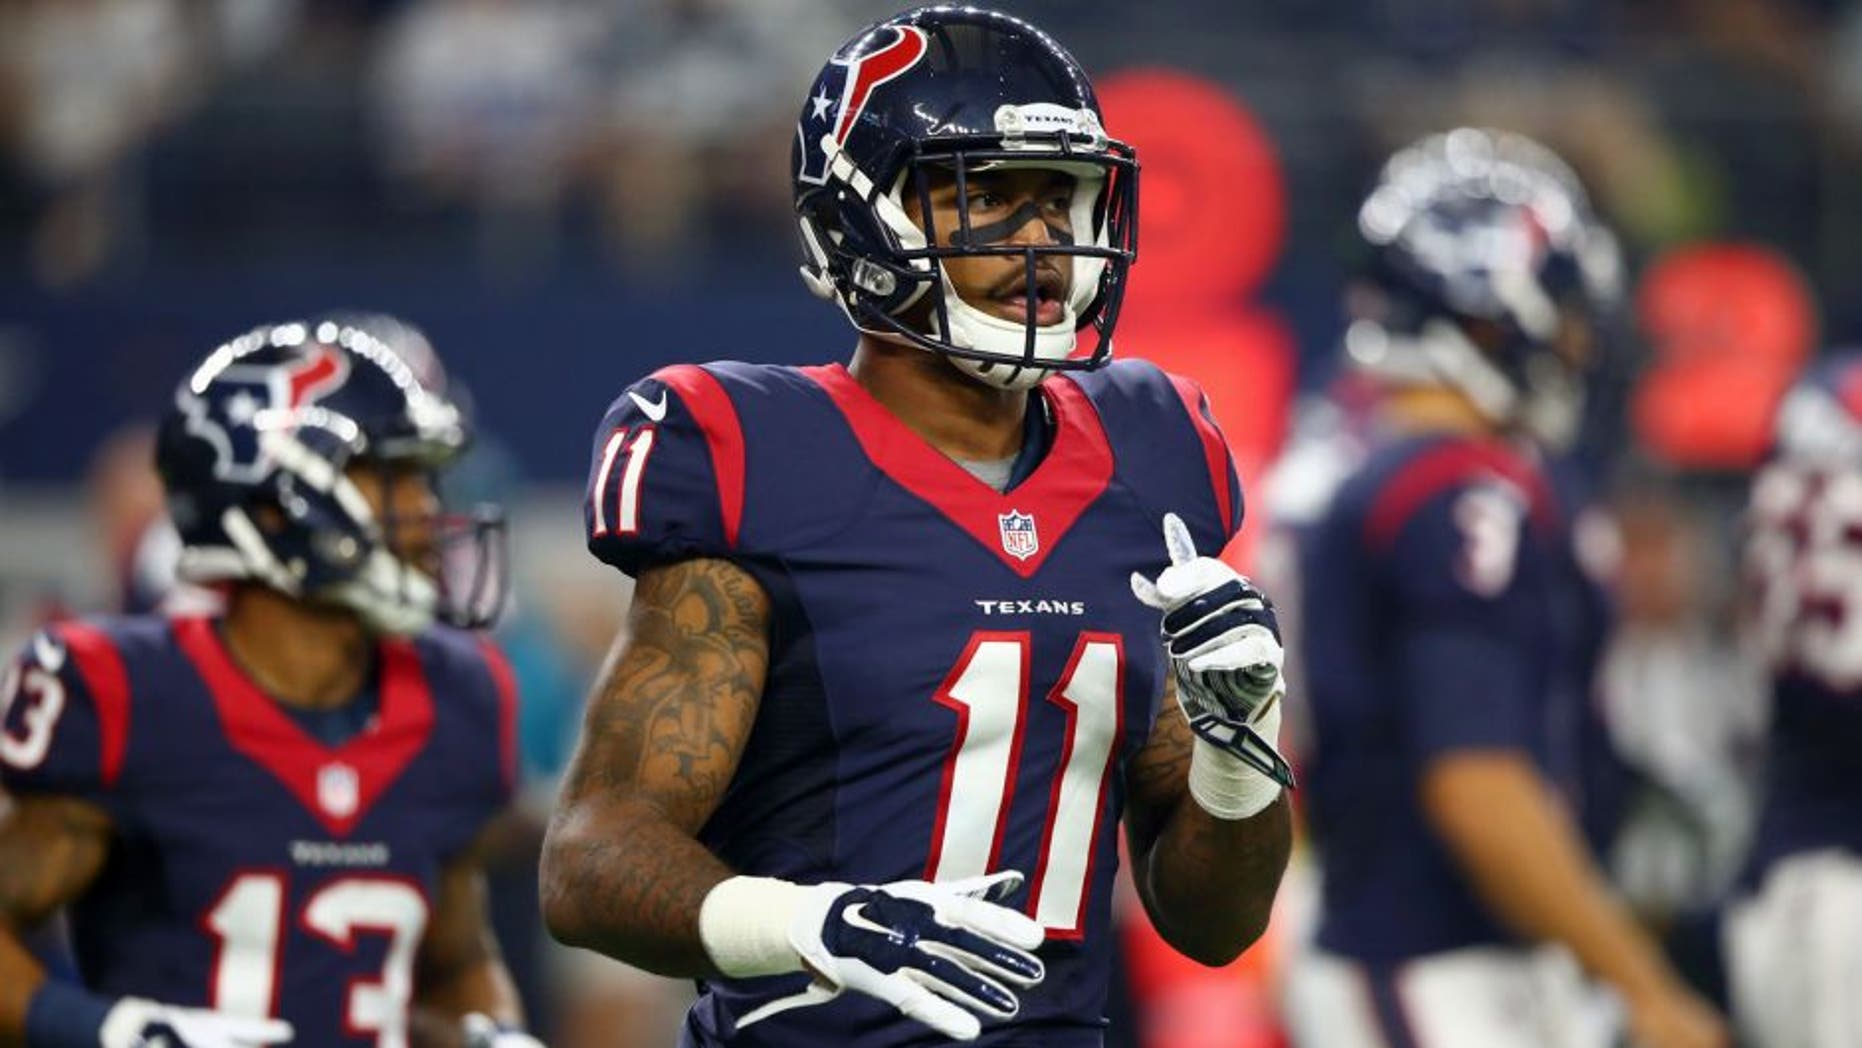 ARLINGTON, TX - SEPTEMBER 03: Jaelen Strong #11 of the Houston Texans during a preseason game on September 3, 2015 in Arlington, Texas. (Photo by Ronald Martinez/Getty Images)